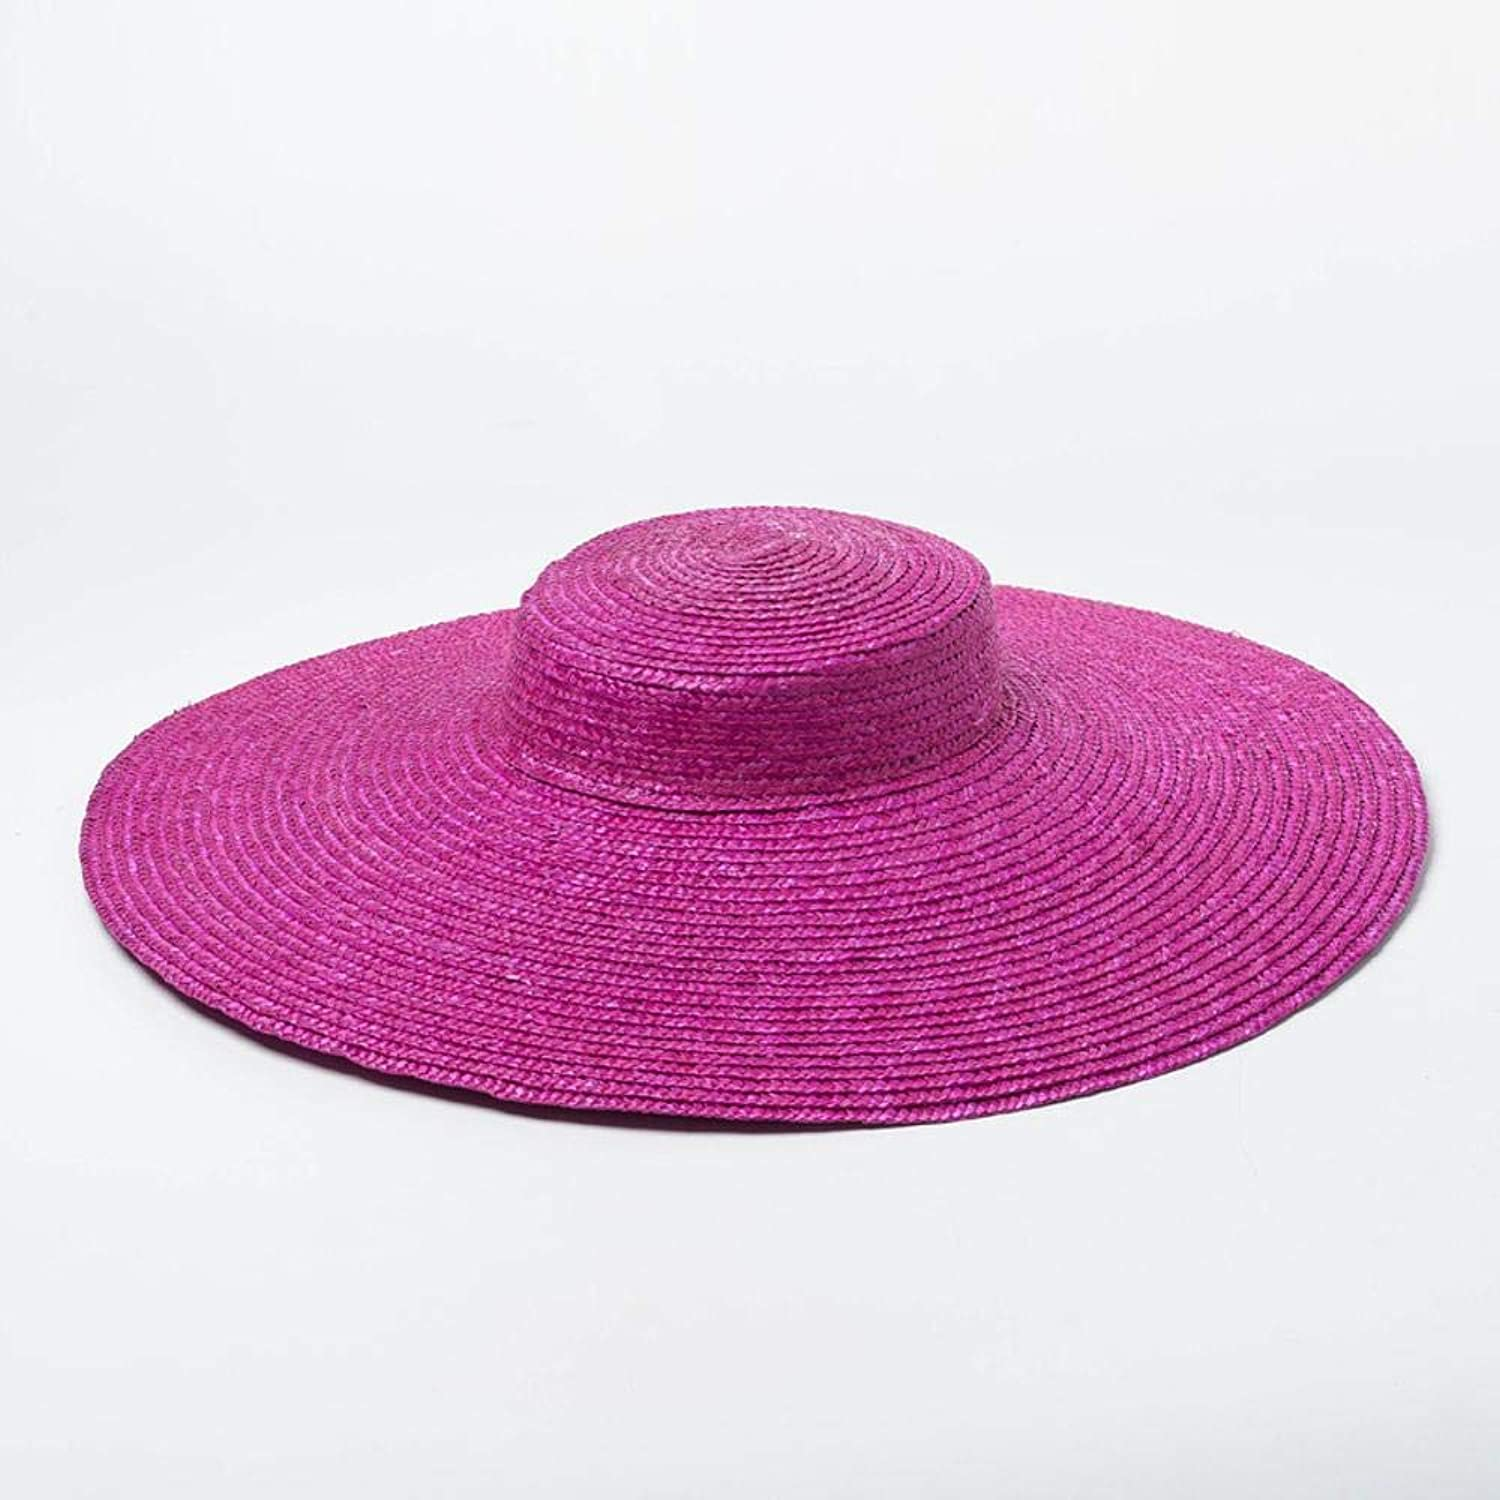 TtKj Lady Straw Hat Europe and America Simple Fashion Meticulous Straw Shallow Flat Cap Sun Visor Beach Big Eaves Straw Hat Walking Show Hat